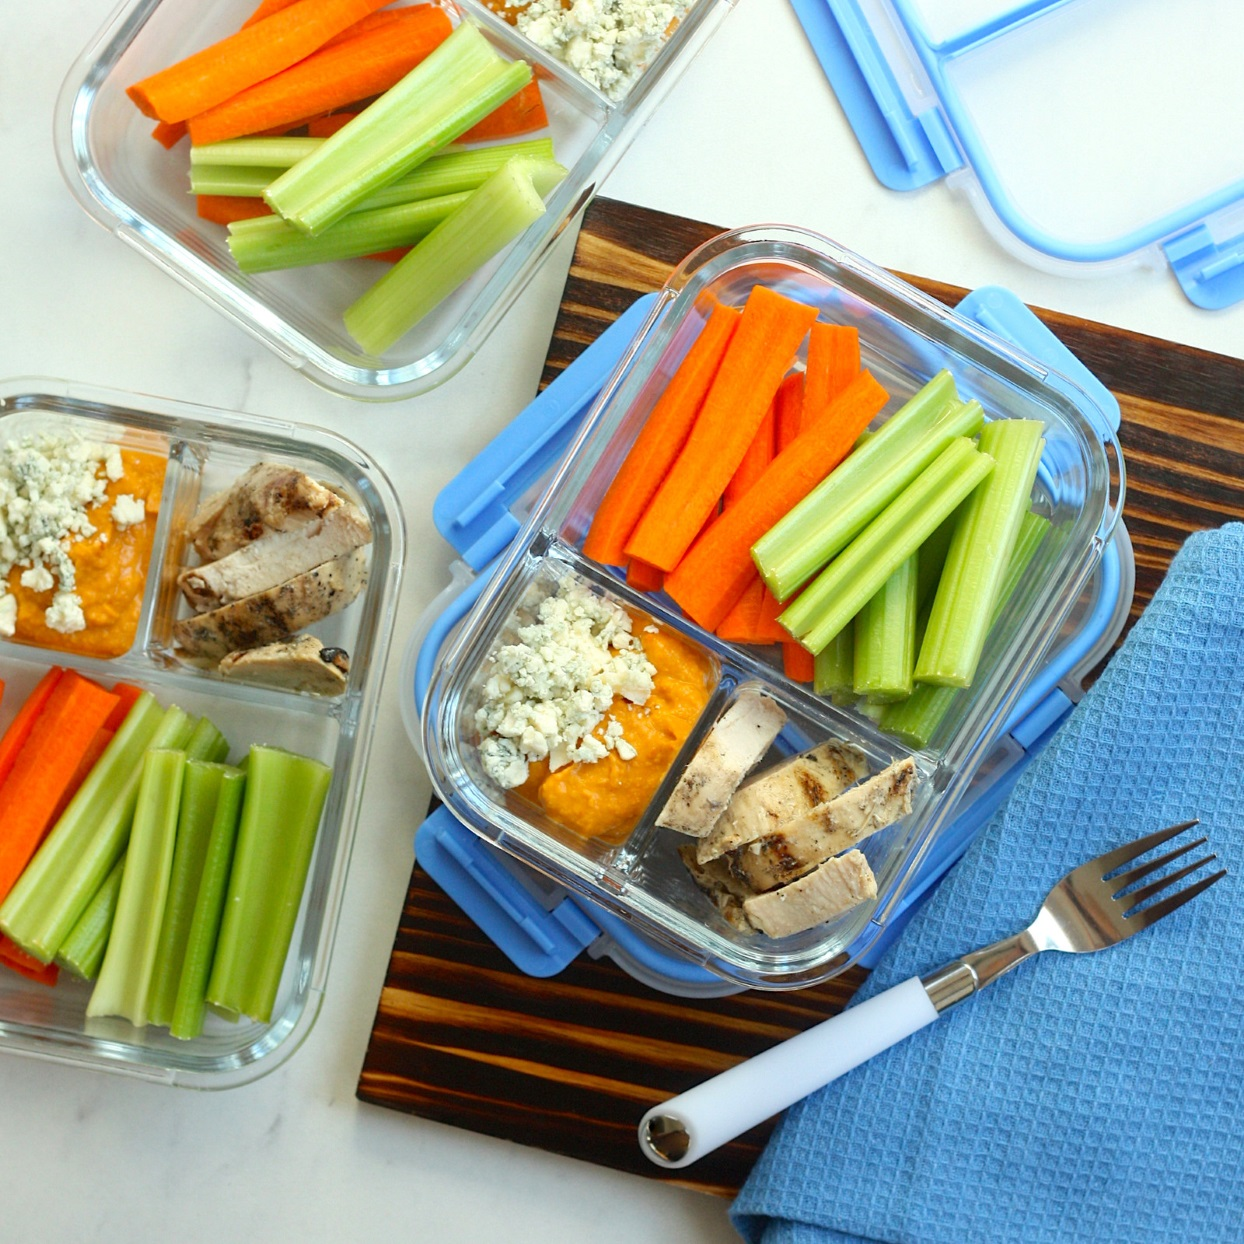 These tailgate-inspired lunch bowls can be assembled in about 15 minutes using just a handful of ingredients from your local specialty grocery store, like pregrilled chicken and spicy Buffalo-flavored hummus. We're packing these up with crunchy veggie sticks and blue cheese so you can savor all the game-day flavors, but for a fraction of the calories. Source: EatingWell.com, December 2019